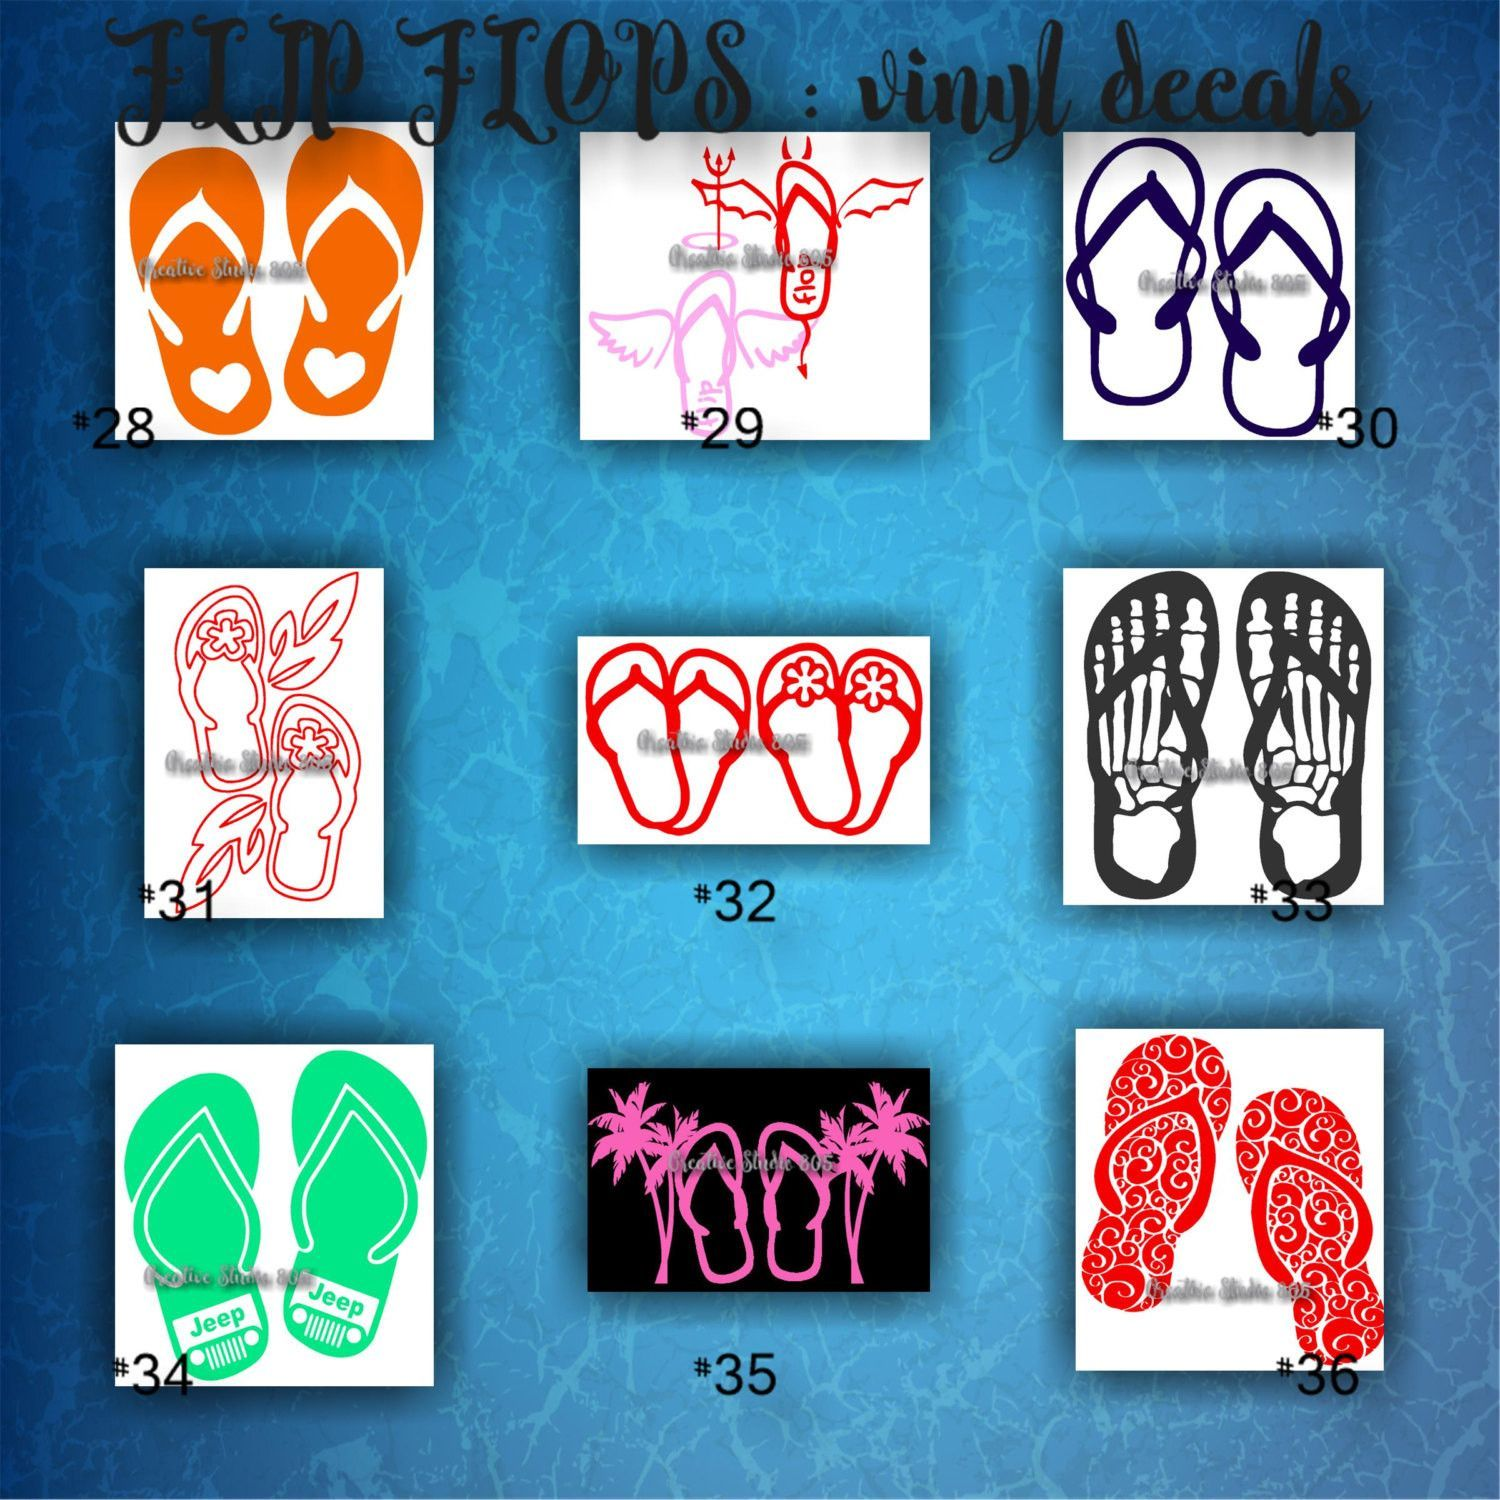 FLIP FLOPS Vinyl Decals Car Window Stickers Custom Vinyl Sticker - Car window stickers printing